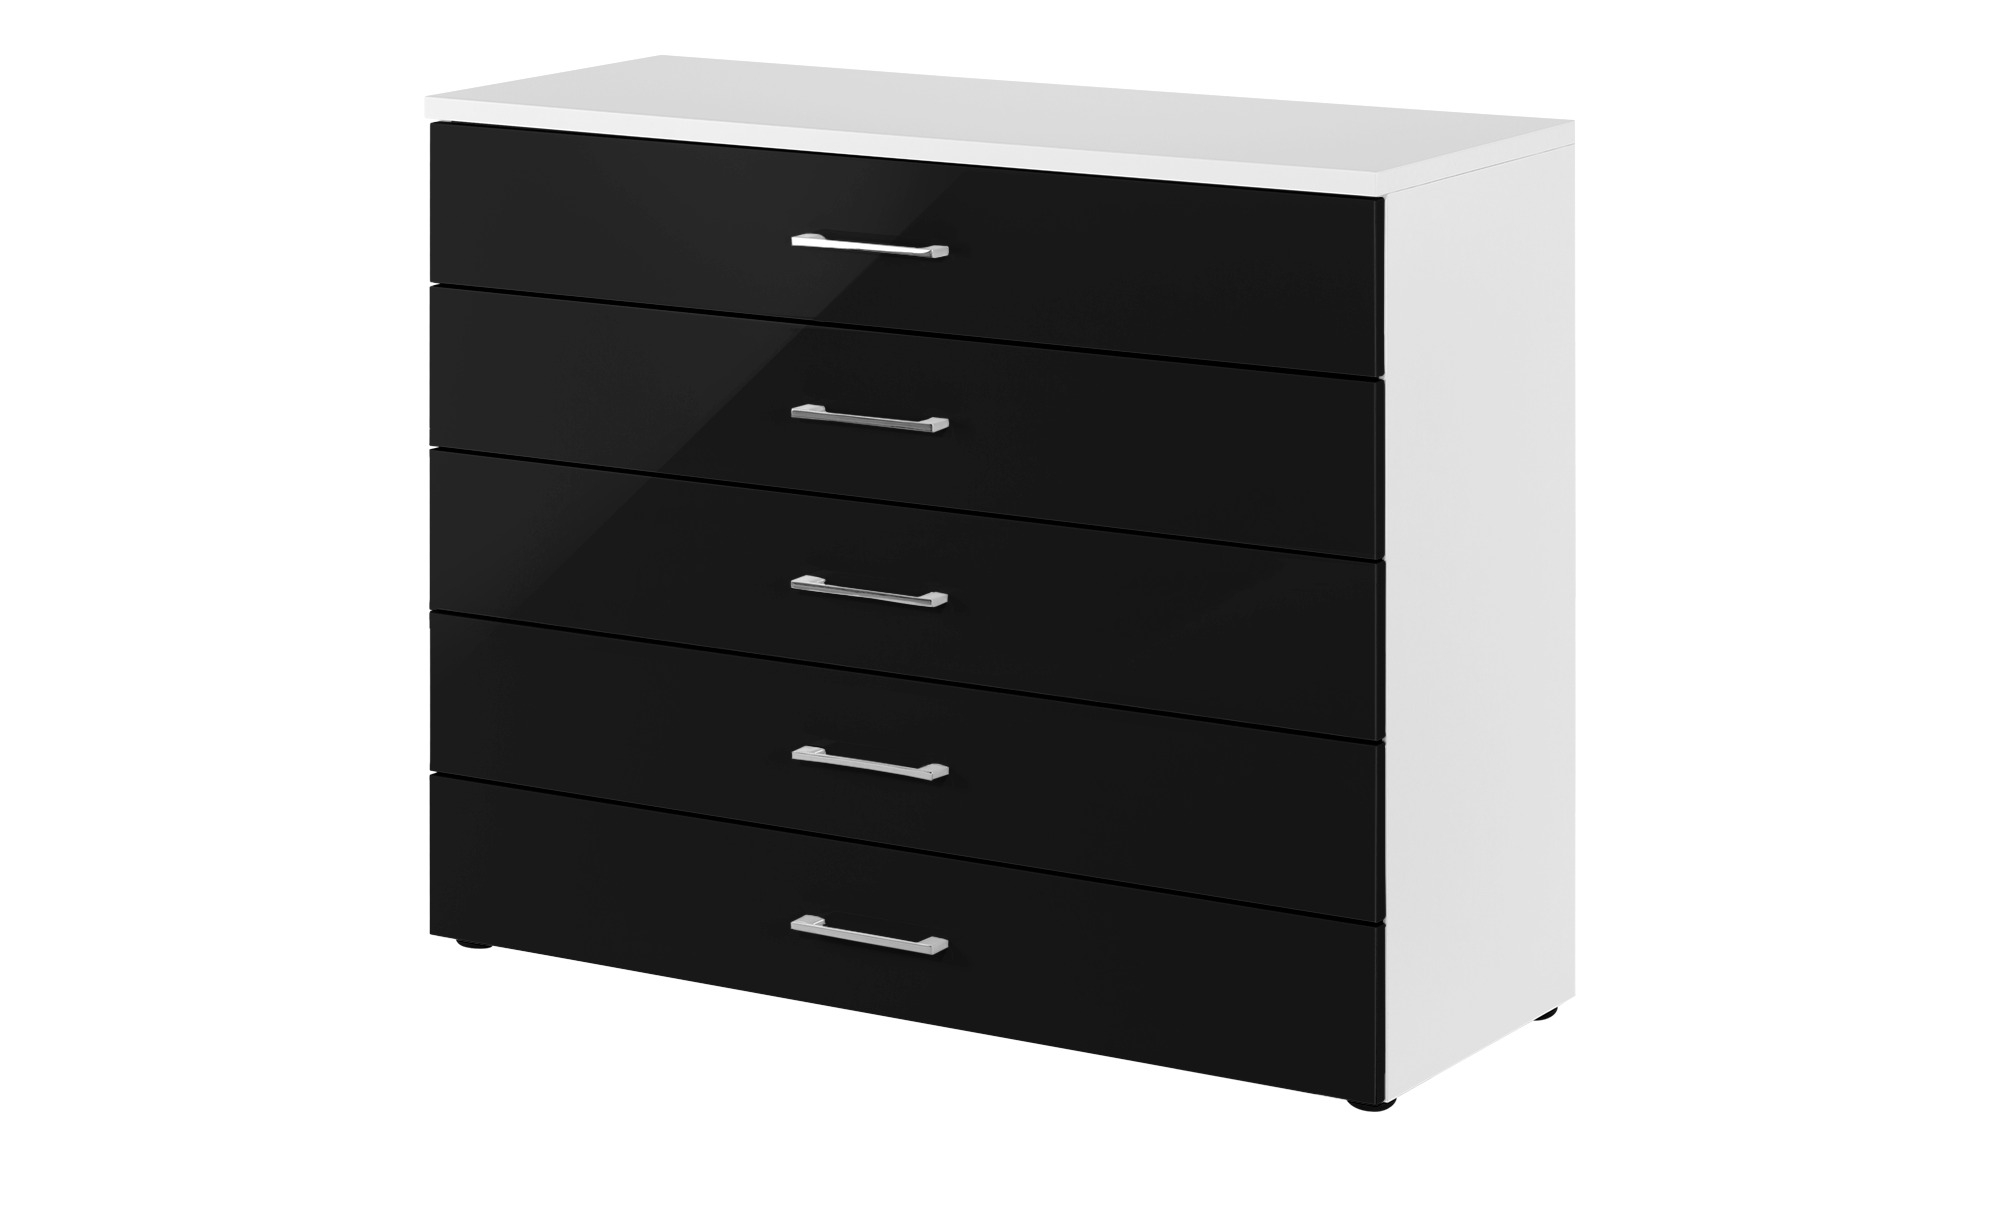 kommode colors breite 100 cm h he 84 cm schwarz online kaufen bei woonio. Black Bedroom Furniture Sets. Home Design Ideas